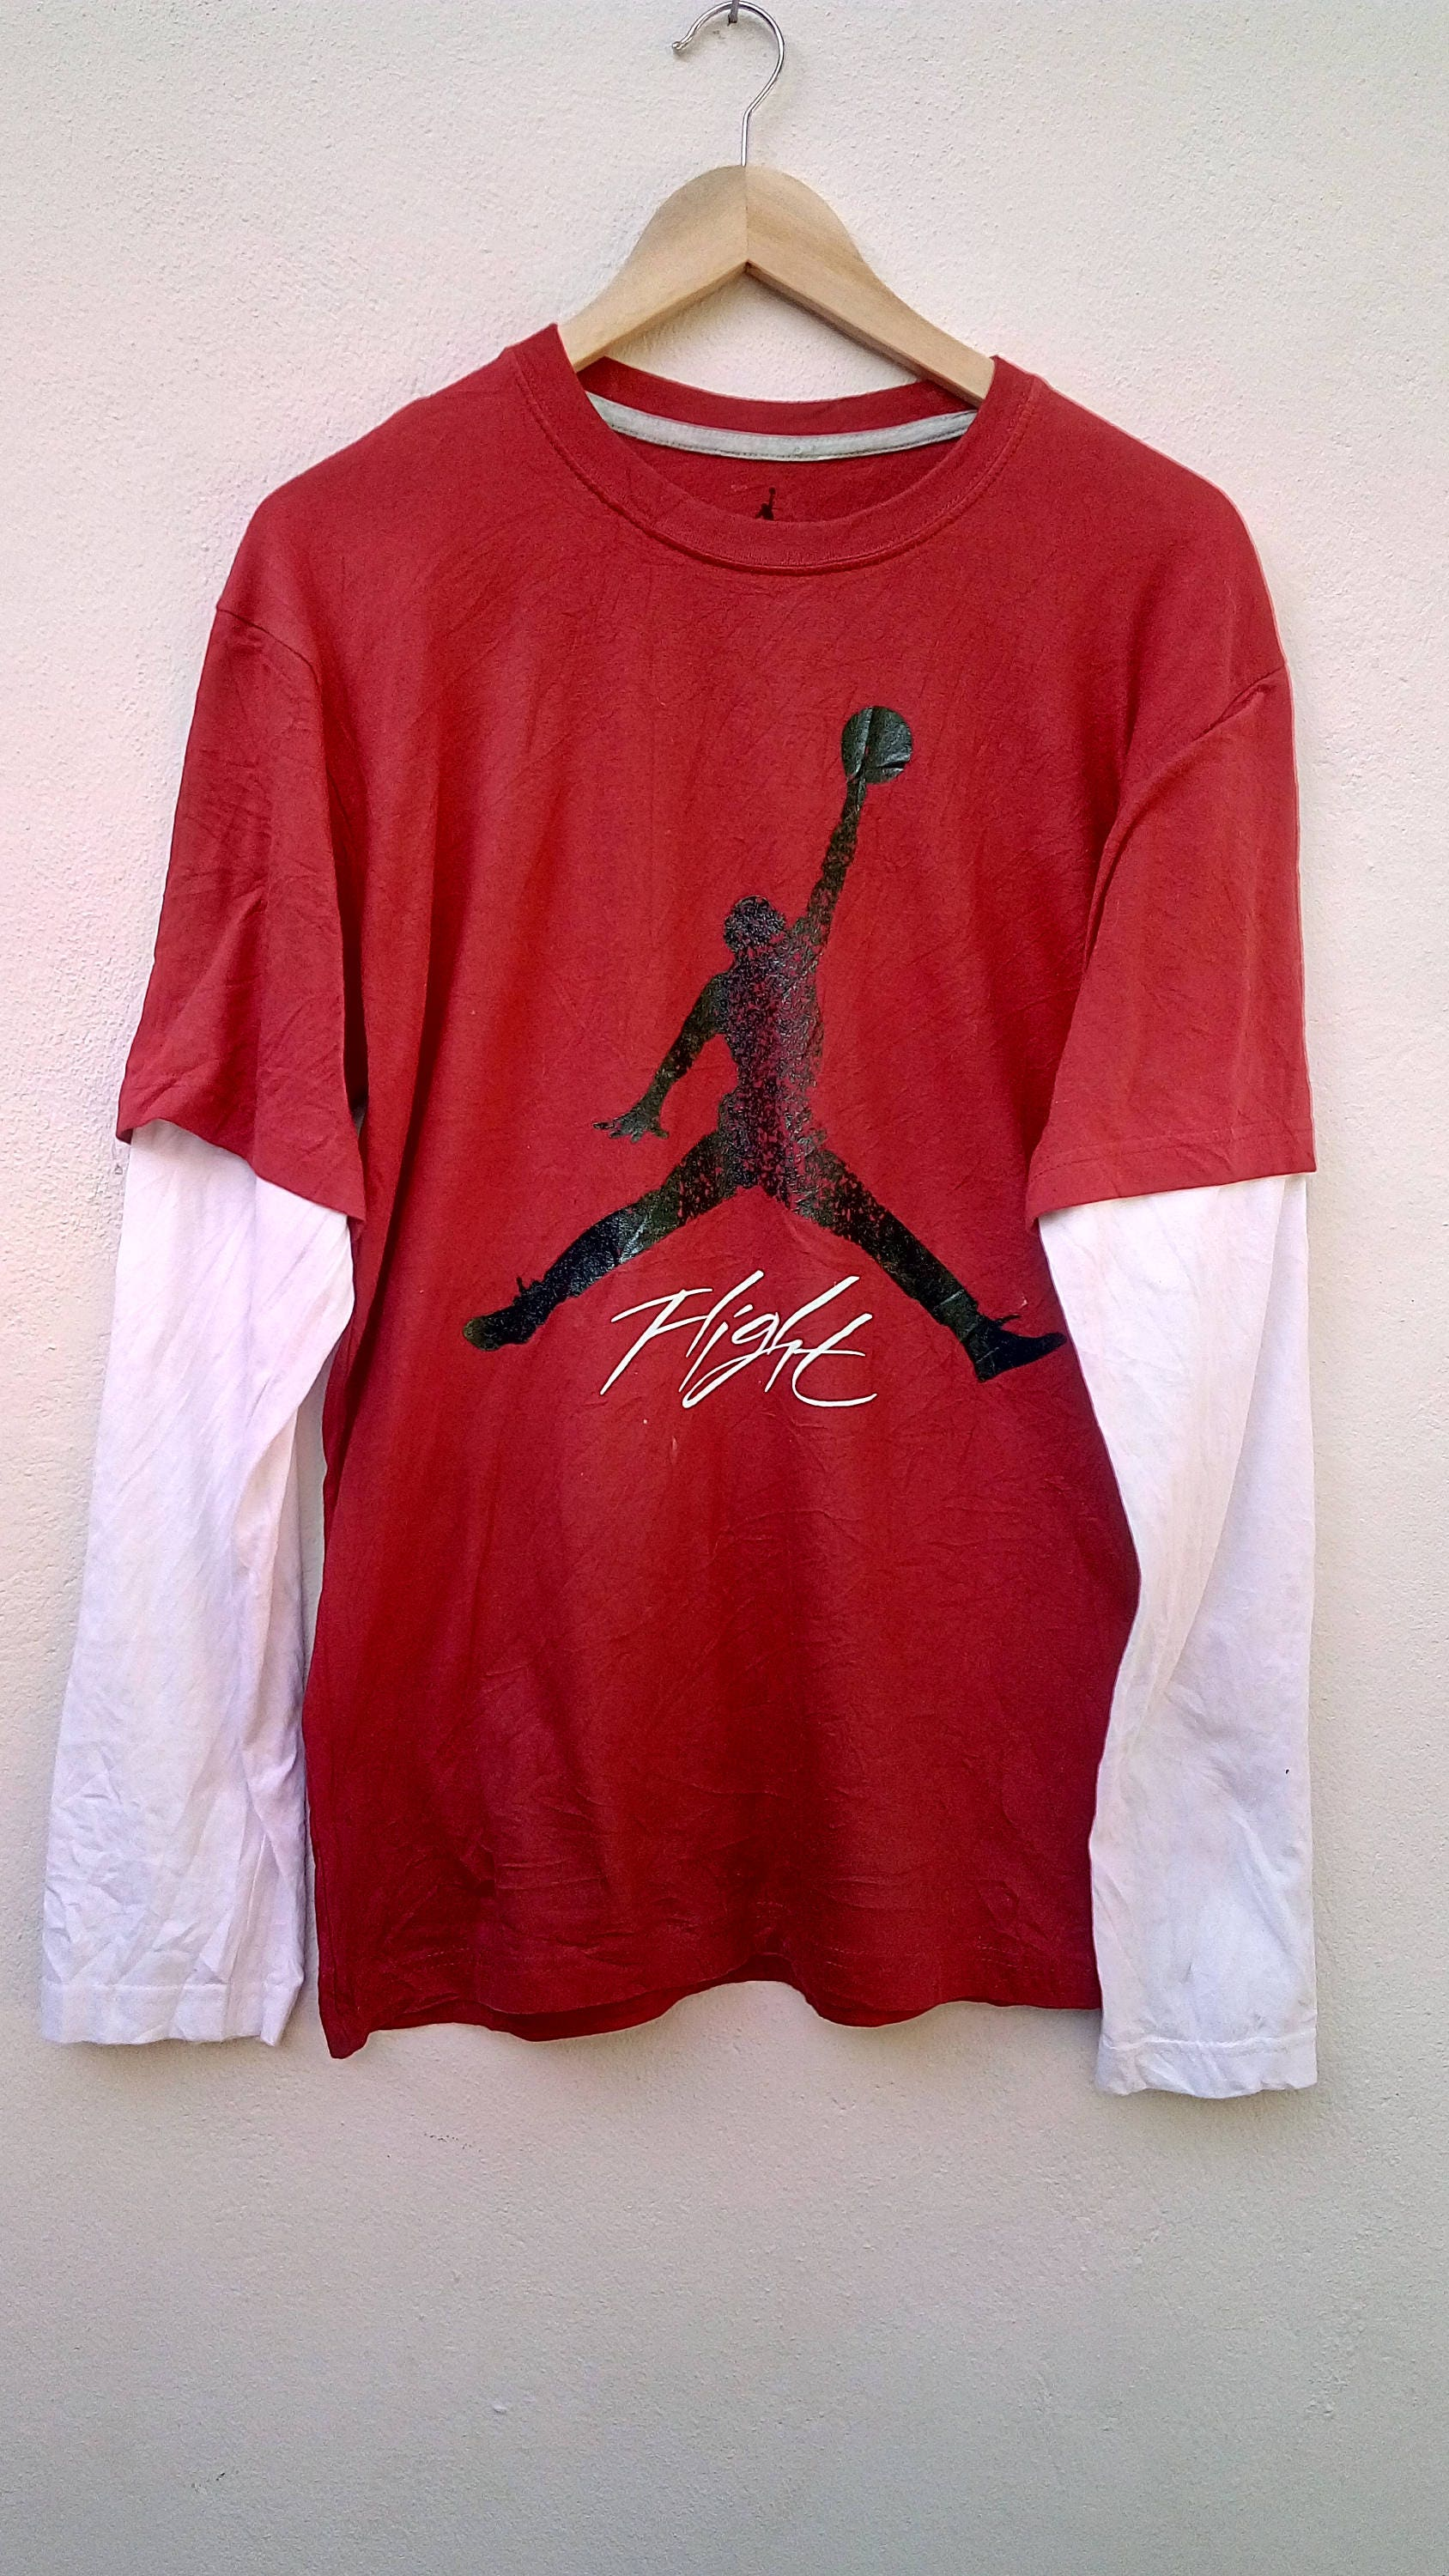 0be7c0740043 Vintage NIKE Air Jordan Long Sleeve tee shirt   90 s